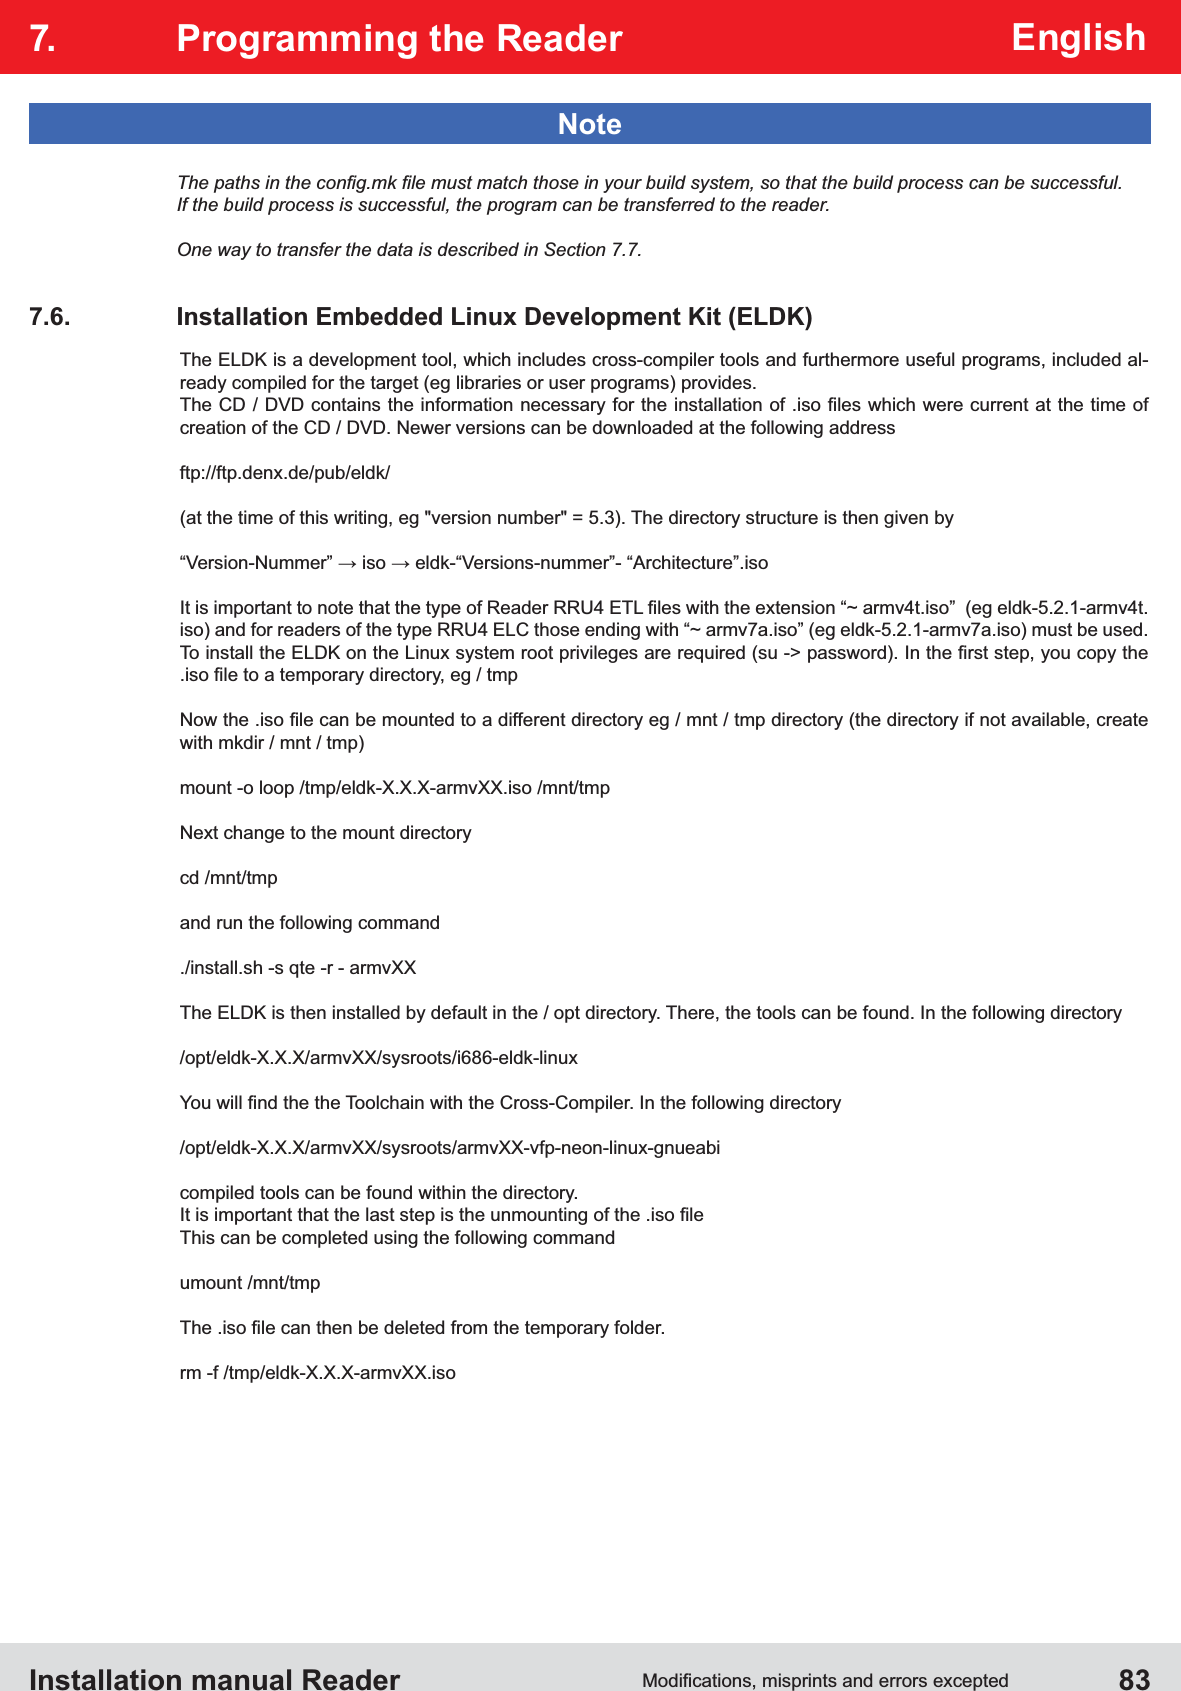 """Installation manual Reader  83English7.  Programming the ReaderNoteOne way to transfer the data is described in Section 7.7. The ELDK is a development tool, which includes cross-compiler tools and furthermore useful programs, included al-ready compiled for the target (eg libraries or user programs) provides.creation of the CD / DVD. Newer versions can be downloaded at the following addressftp://ftp.denx.de/pub/eldk/(at the time of this writing, eg """"version number"""" = 5.3). The directory structure is then given bywith mkdir / mnt / tmp)mount -o loop /tmp/eldk-X.X.X-armvXX.iso /mnt/tmpNext change to the mount directorycd /mnt/tmpand run the following command ./install.sh -s qte -r - armvXXThe ELDK is then installed by default in the / opt directory. There, the tools can be found. In the following directory/opt/eldk-X.X.X/armvXX/sysroots/i686-eldk-linux/opt/eldk-X.X.X/armvXX/sysroots/armvXX-vfp-neon-linux-gnueabicompiled tools can be found within the directory.This can be completed using the following commandumount /mnt/tmprm -f /tmp/eldk-X.X.X-armvXX.iso"""